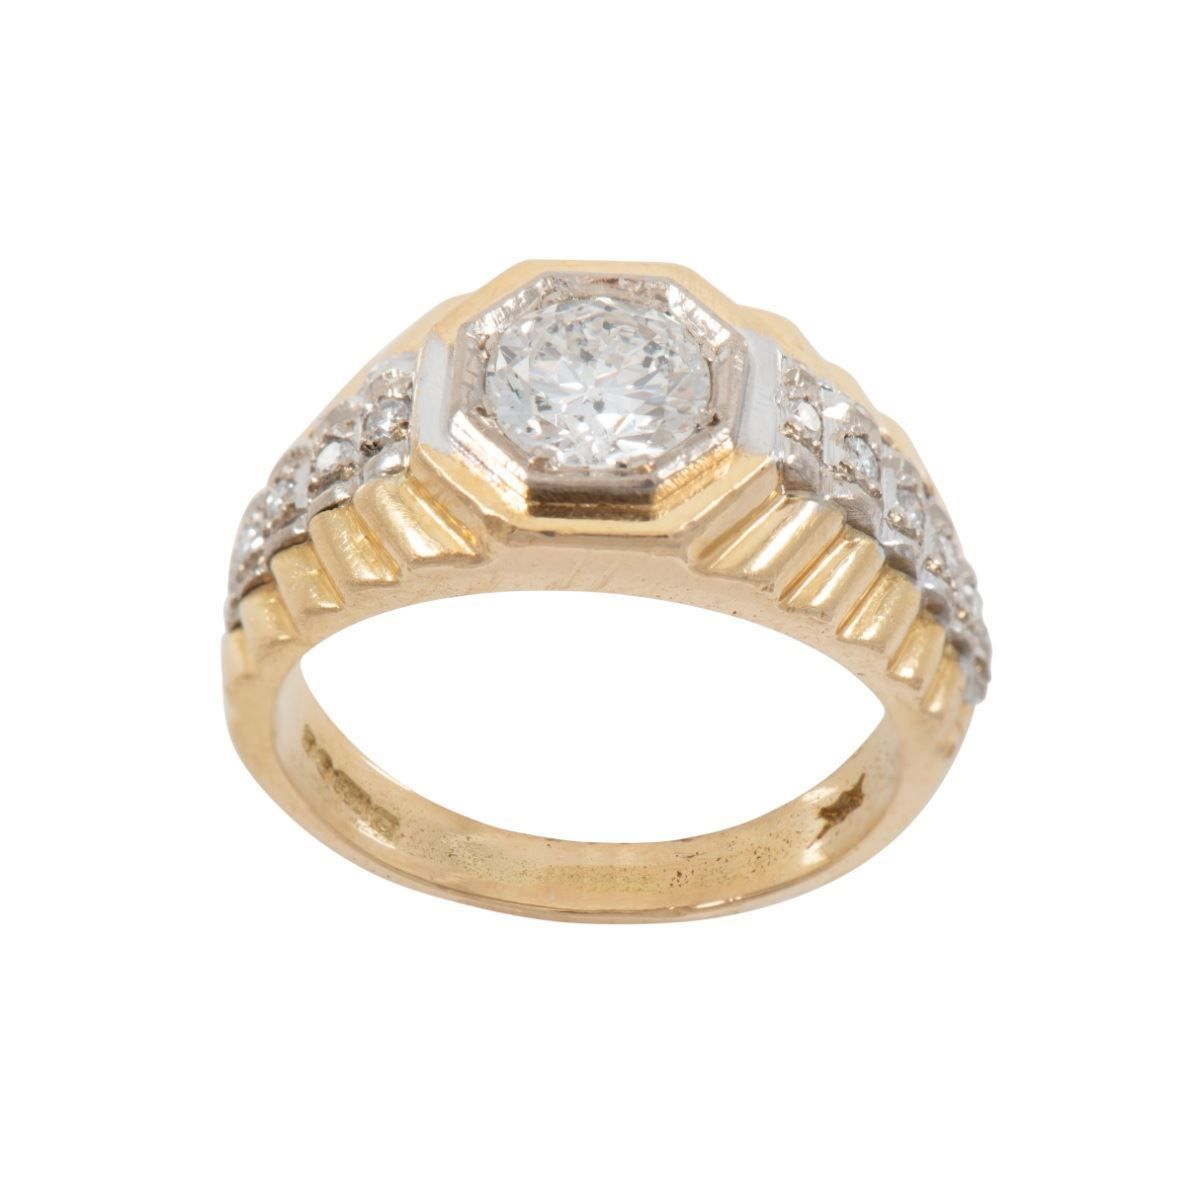 1.12ct Diamond Accent Solitaire Ring (Q)